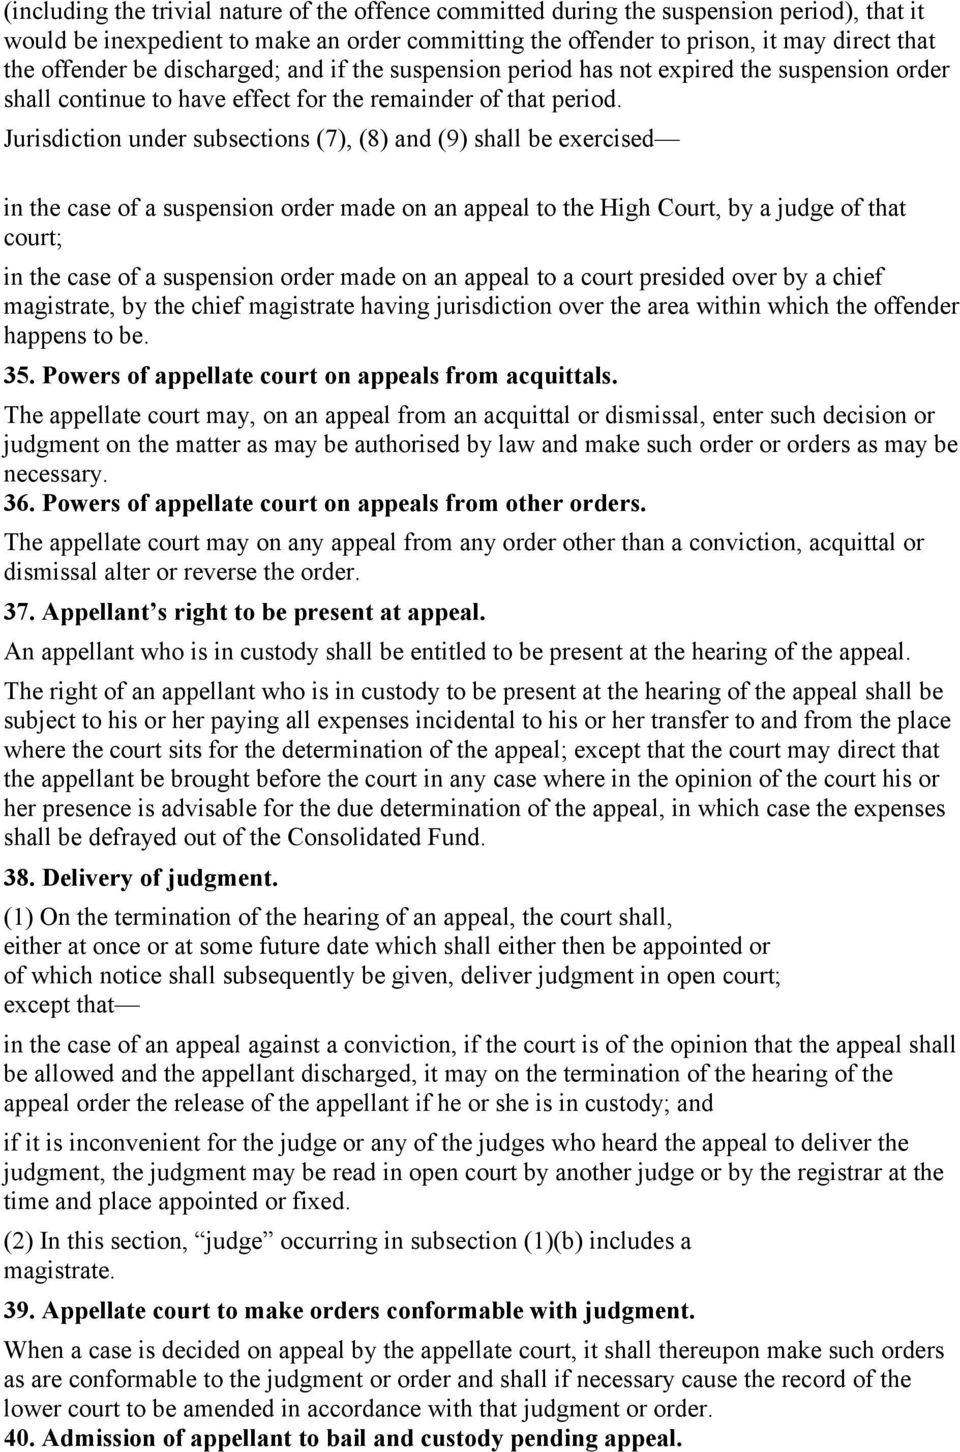 Jurisdiction under subsections (7), (8) and (9) shall be exercised in the case of a suspension order made on an appeal to the High Court, by a judge of that court; in the case of a suspension order